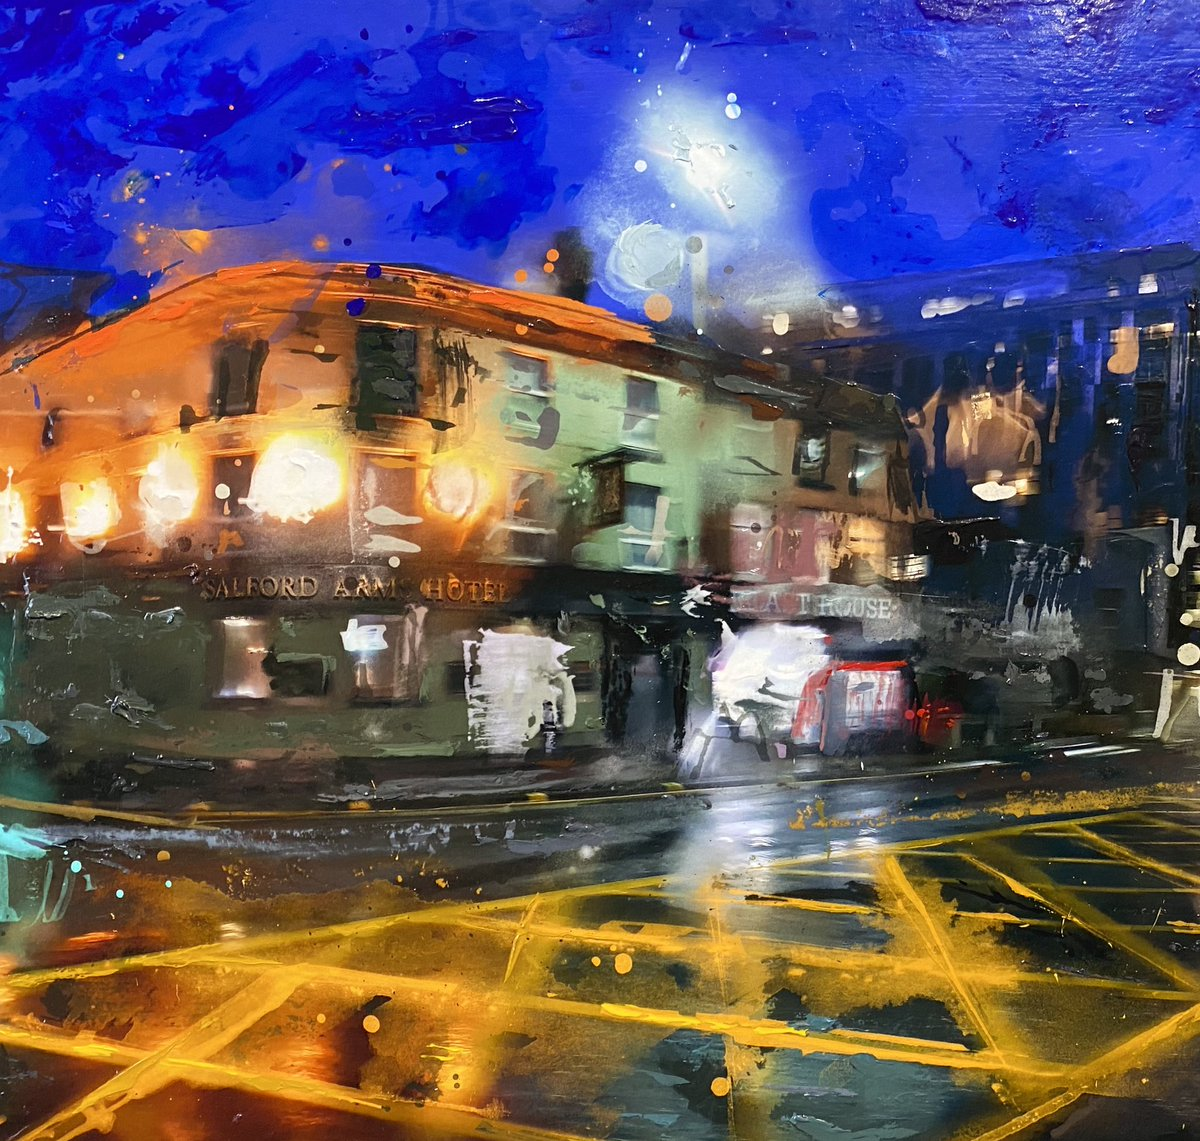 Nice to see more businesses opening, enjoy & stay safe.   Here is a close up of Ben Ark's latest piece which features the Salford Arms hotel where Salford meets Manchester.  #benark #mixedmediaartist #digitalartist #contemporaryart #cheshire #salford #manchester #salfordarmspic.twitter.com/WkzzFpn67F